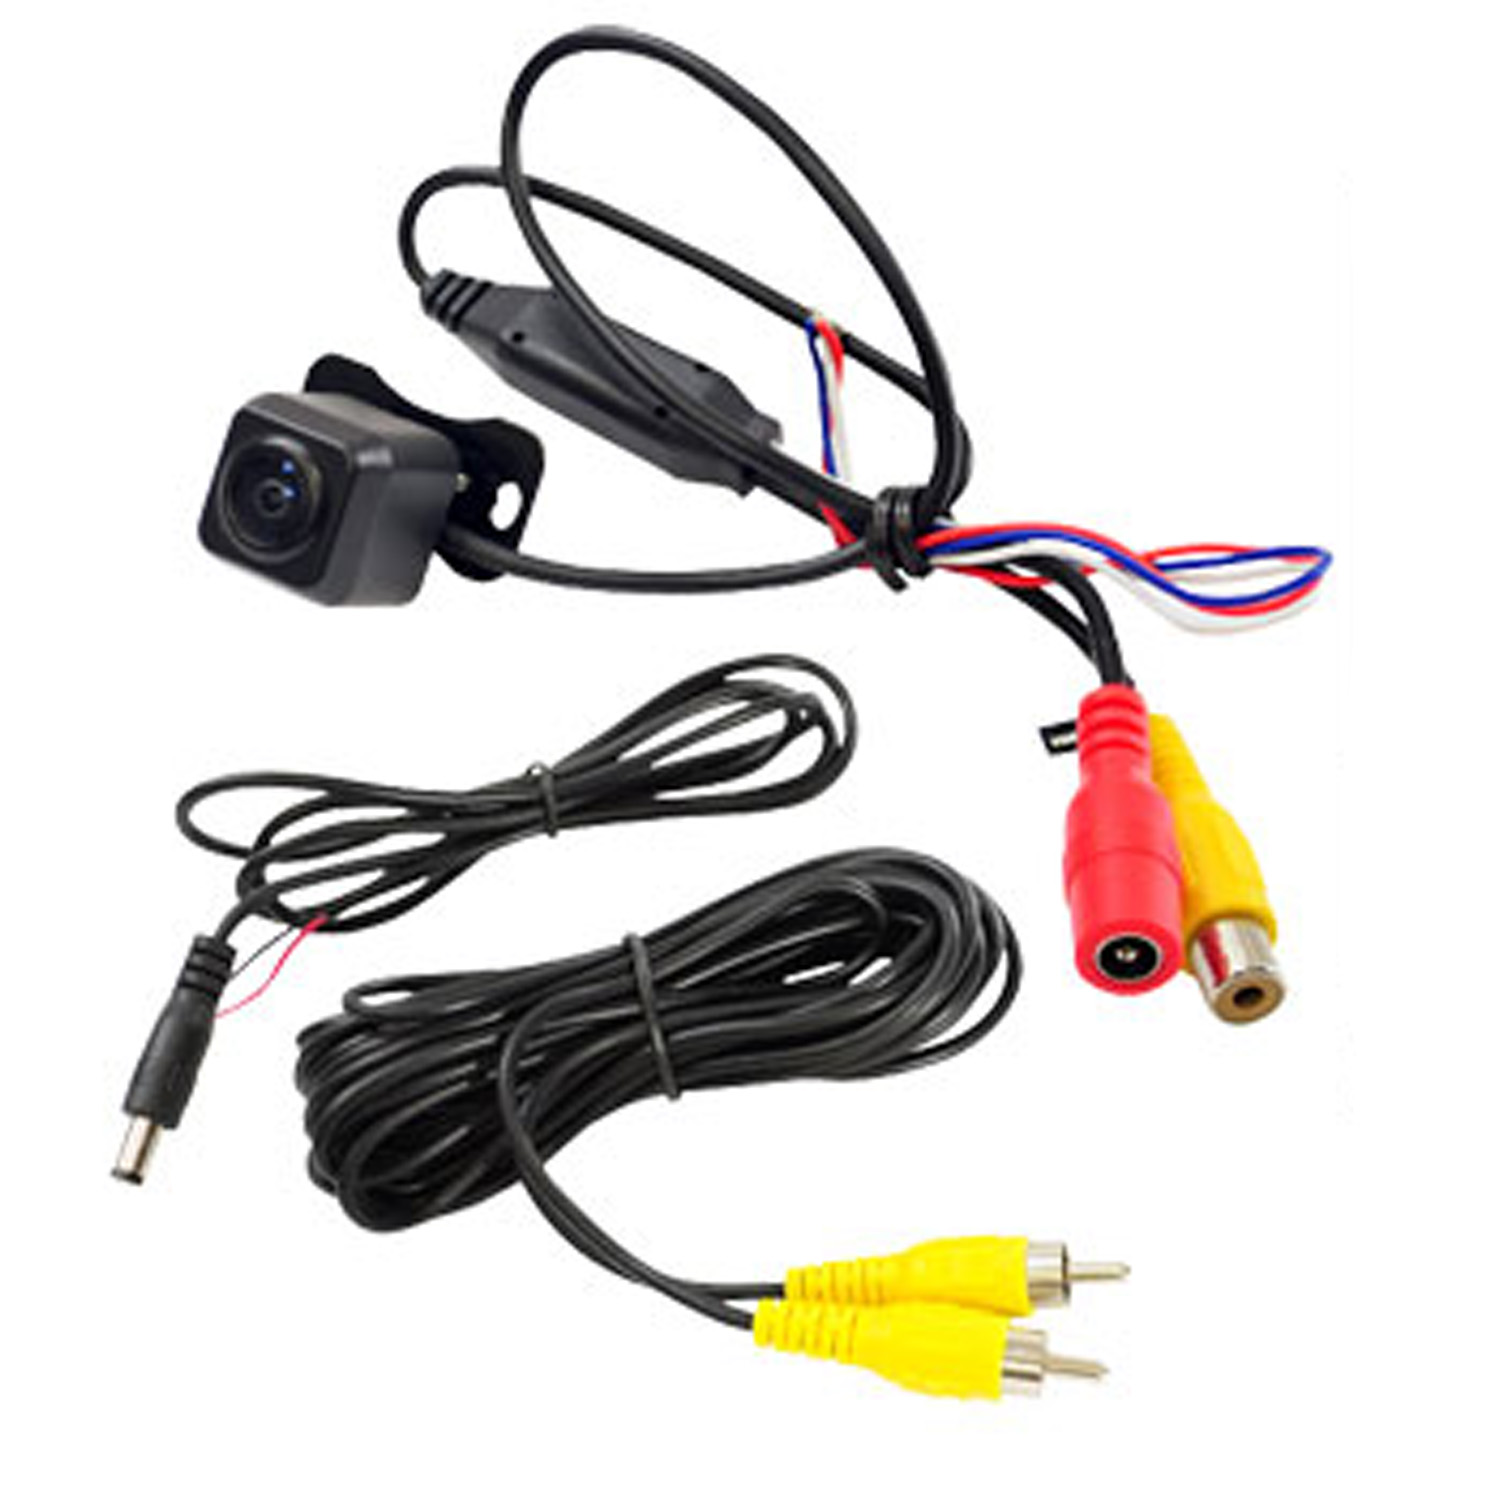 Pyle Car Camera W/ Front And Rear View